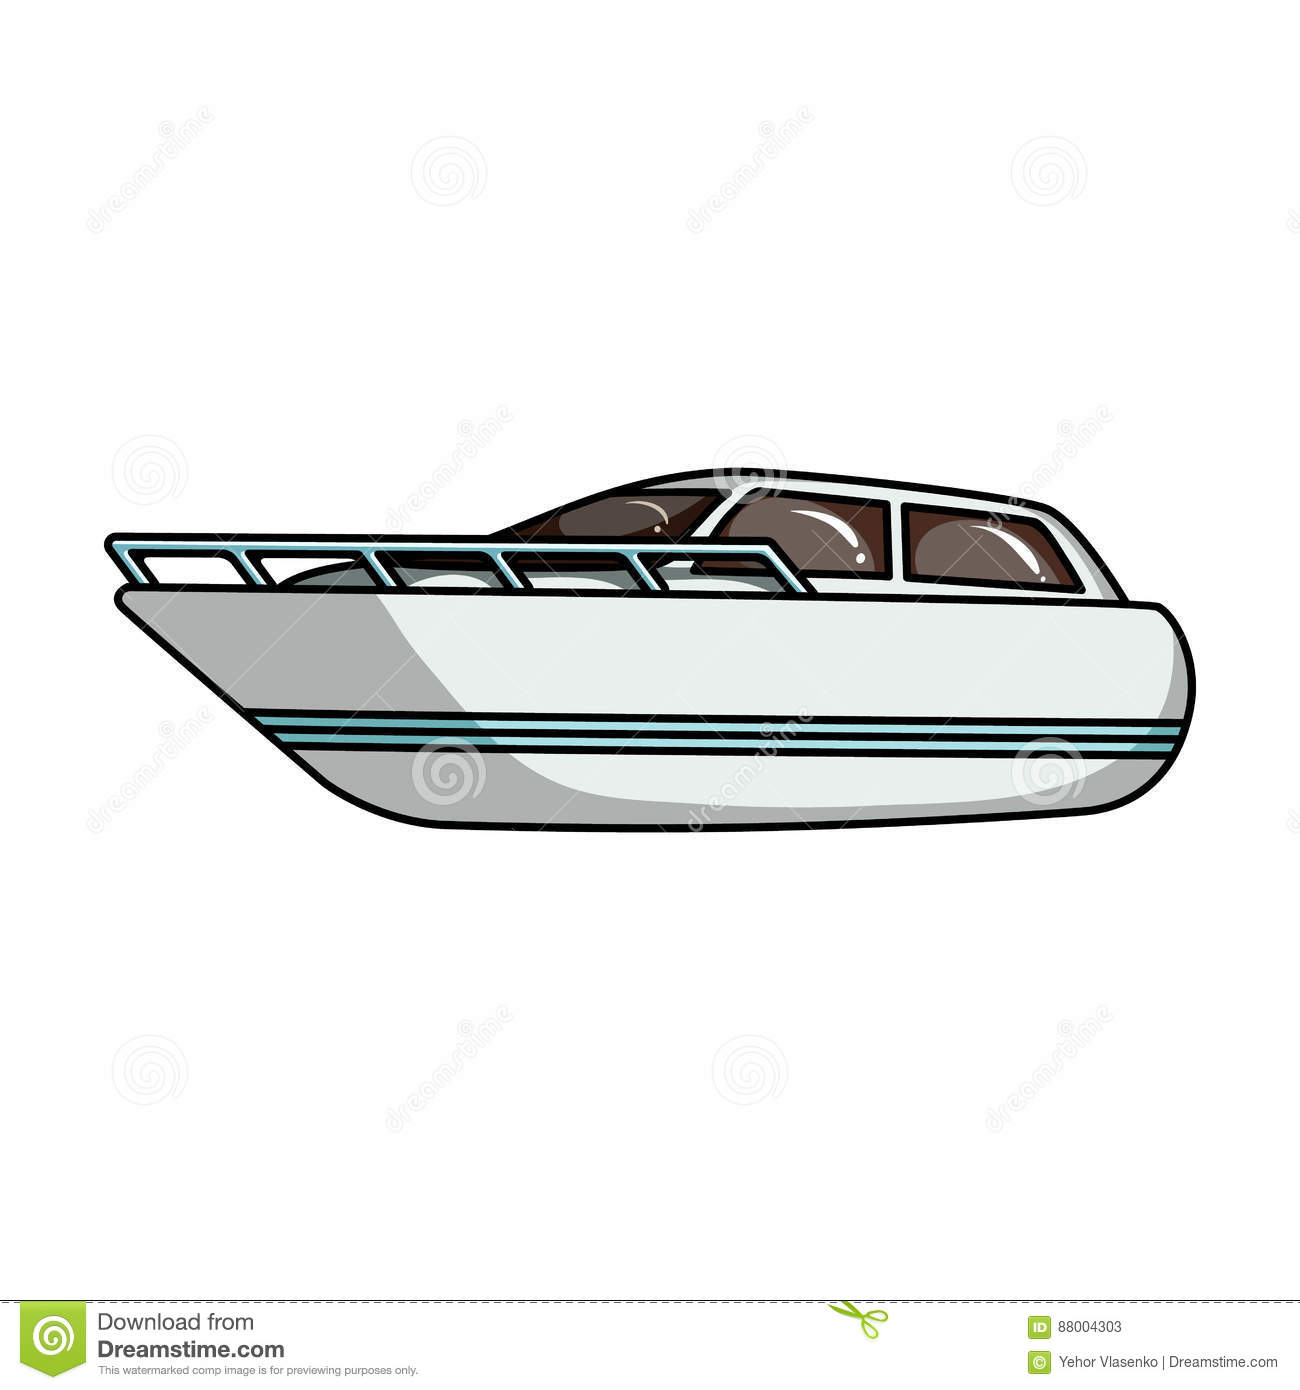 Cartoon Outboard Motors : White motor boat to transport a few people one of the